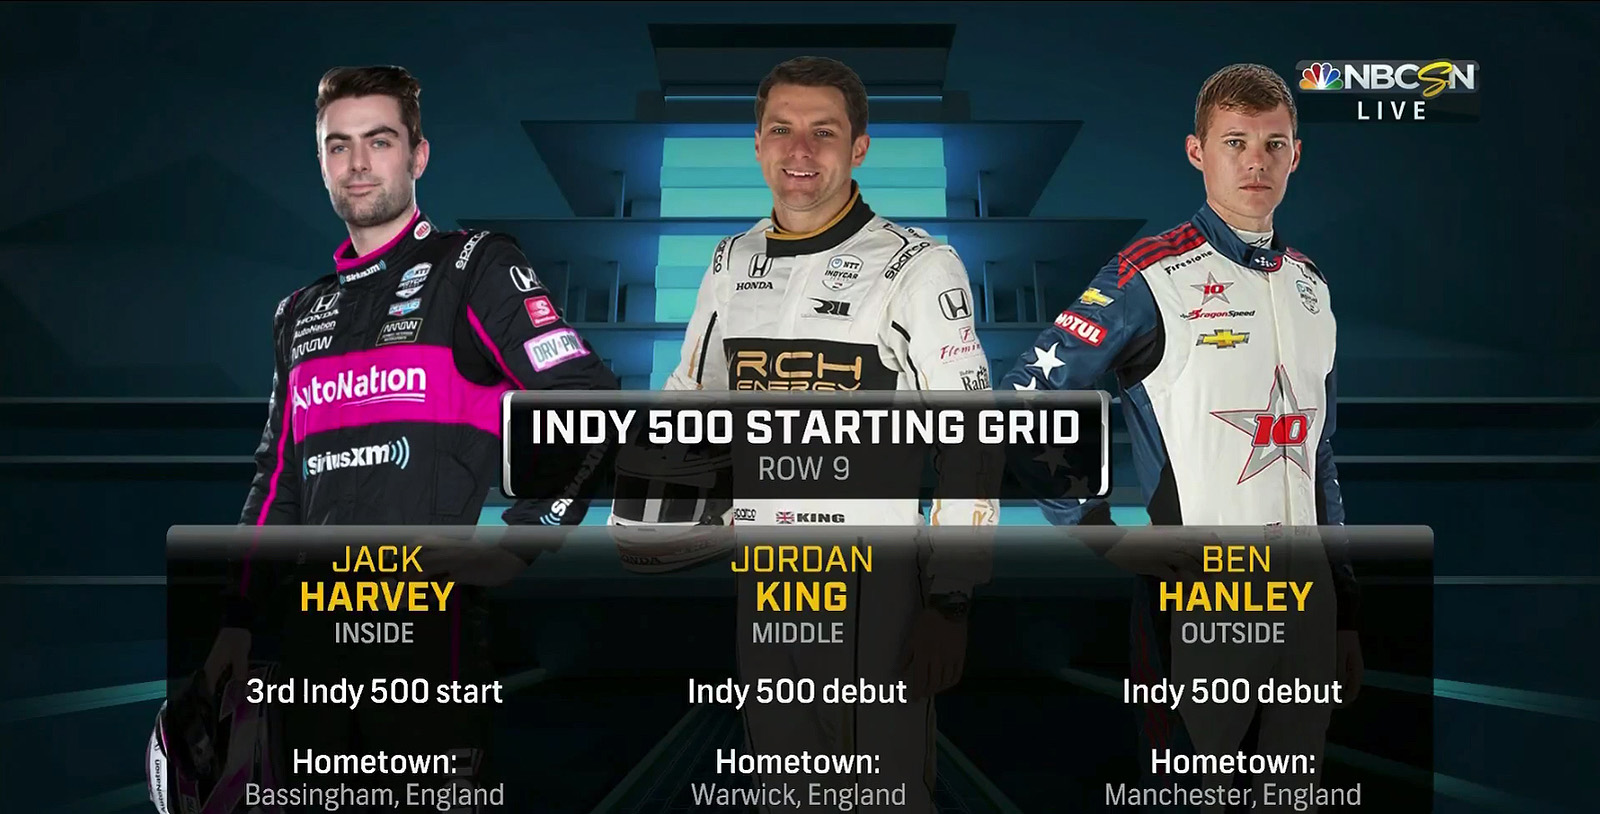 NCS_Indy-500-NBC-Sports_011